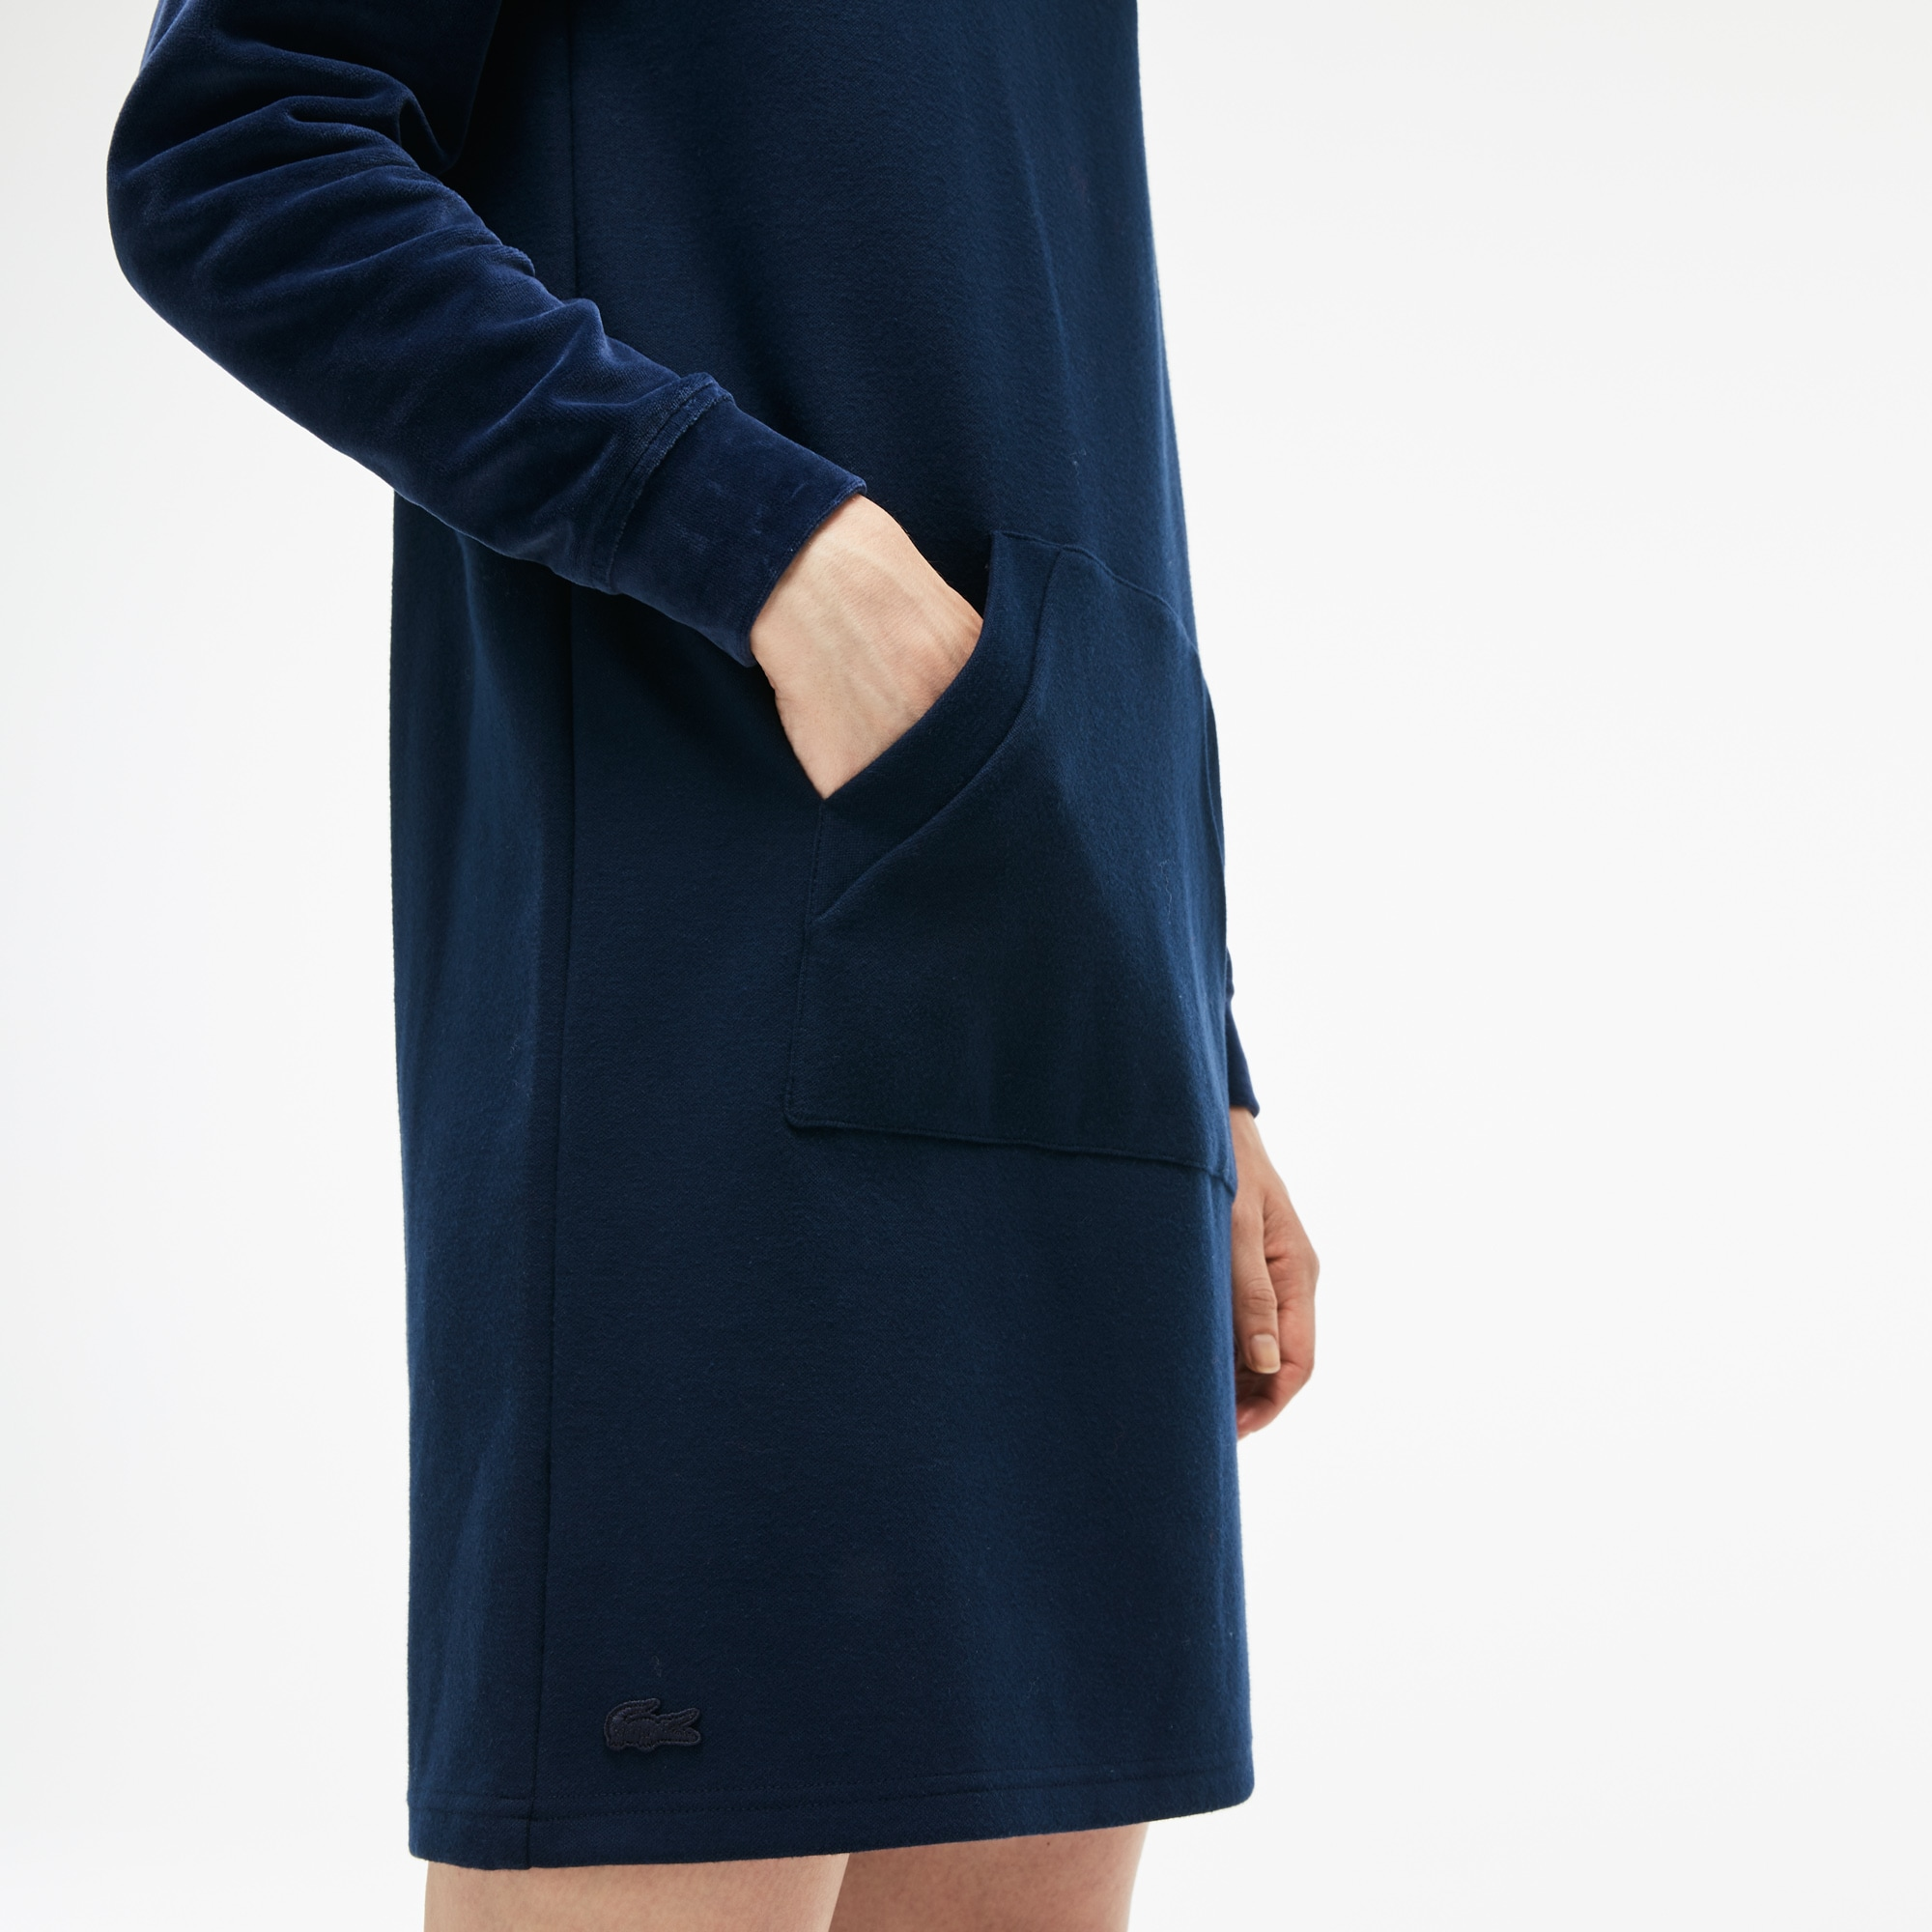 Women's Bimaterial Velour and Terrycloth Jersey Sweatshirt Dress